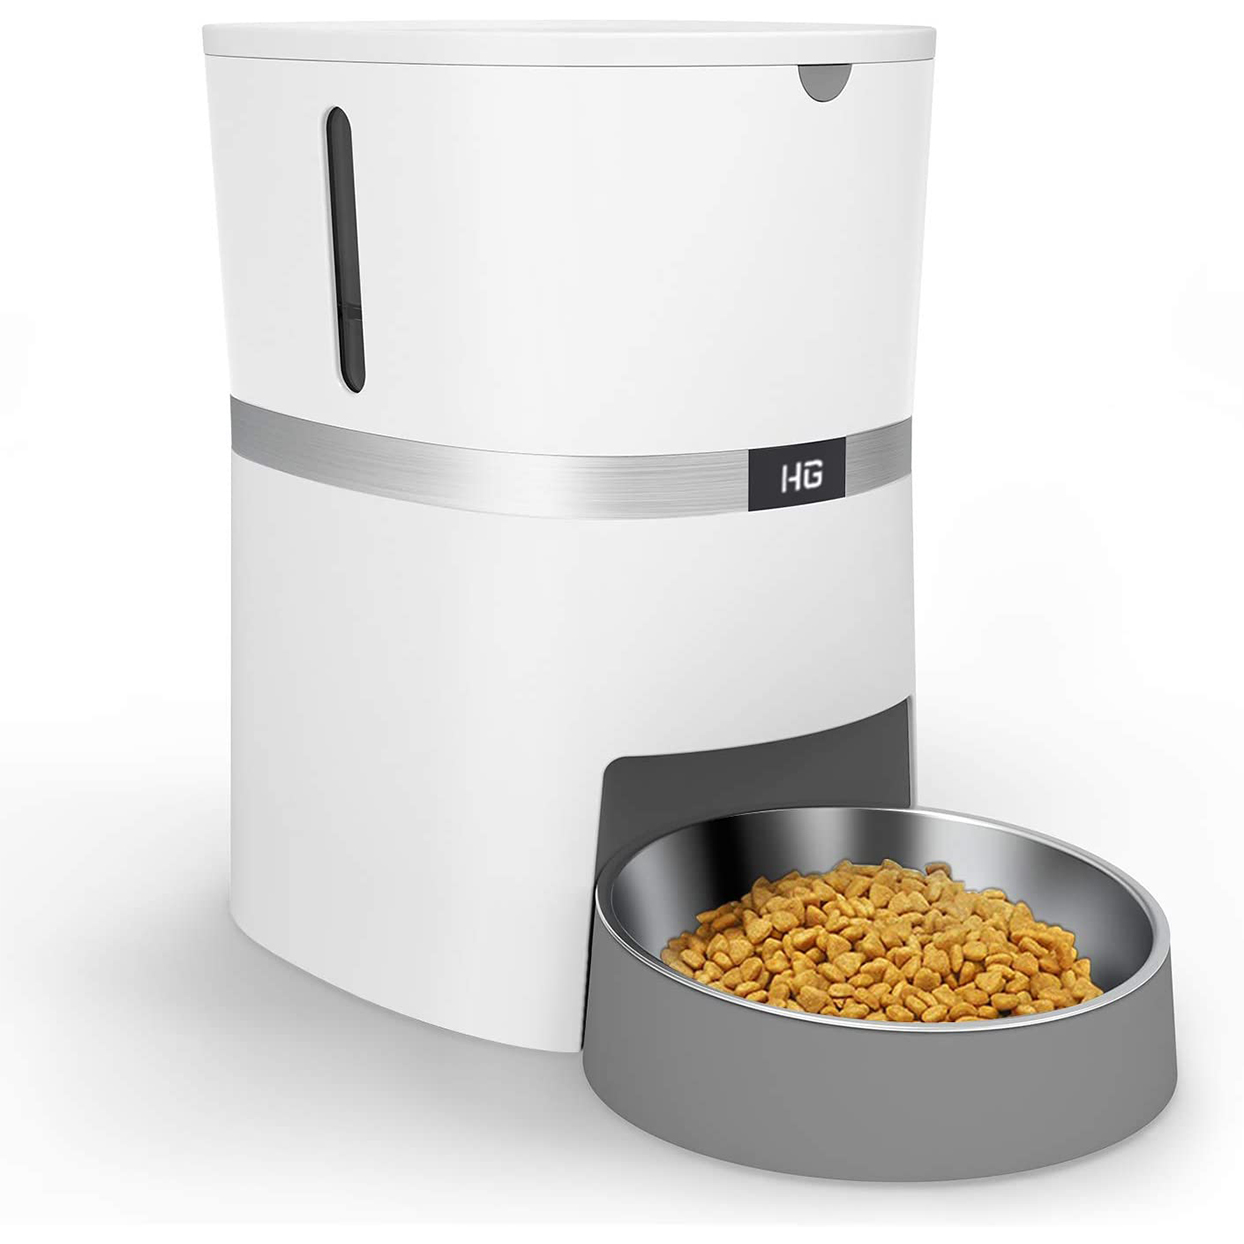 honeyguardian automatic pet feeder